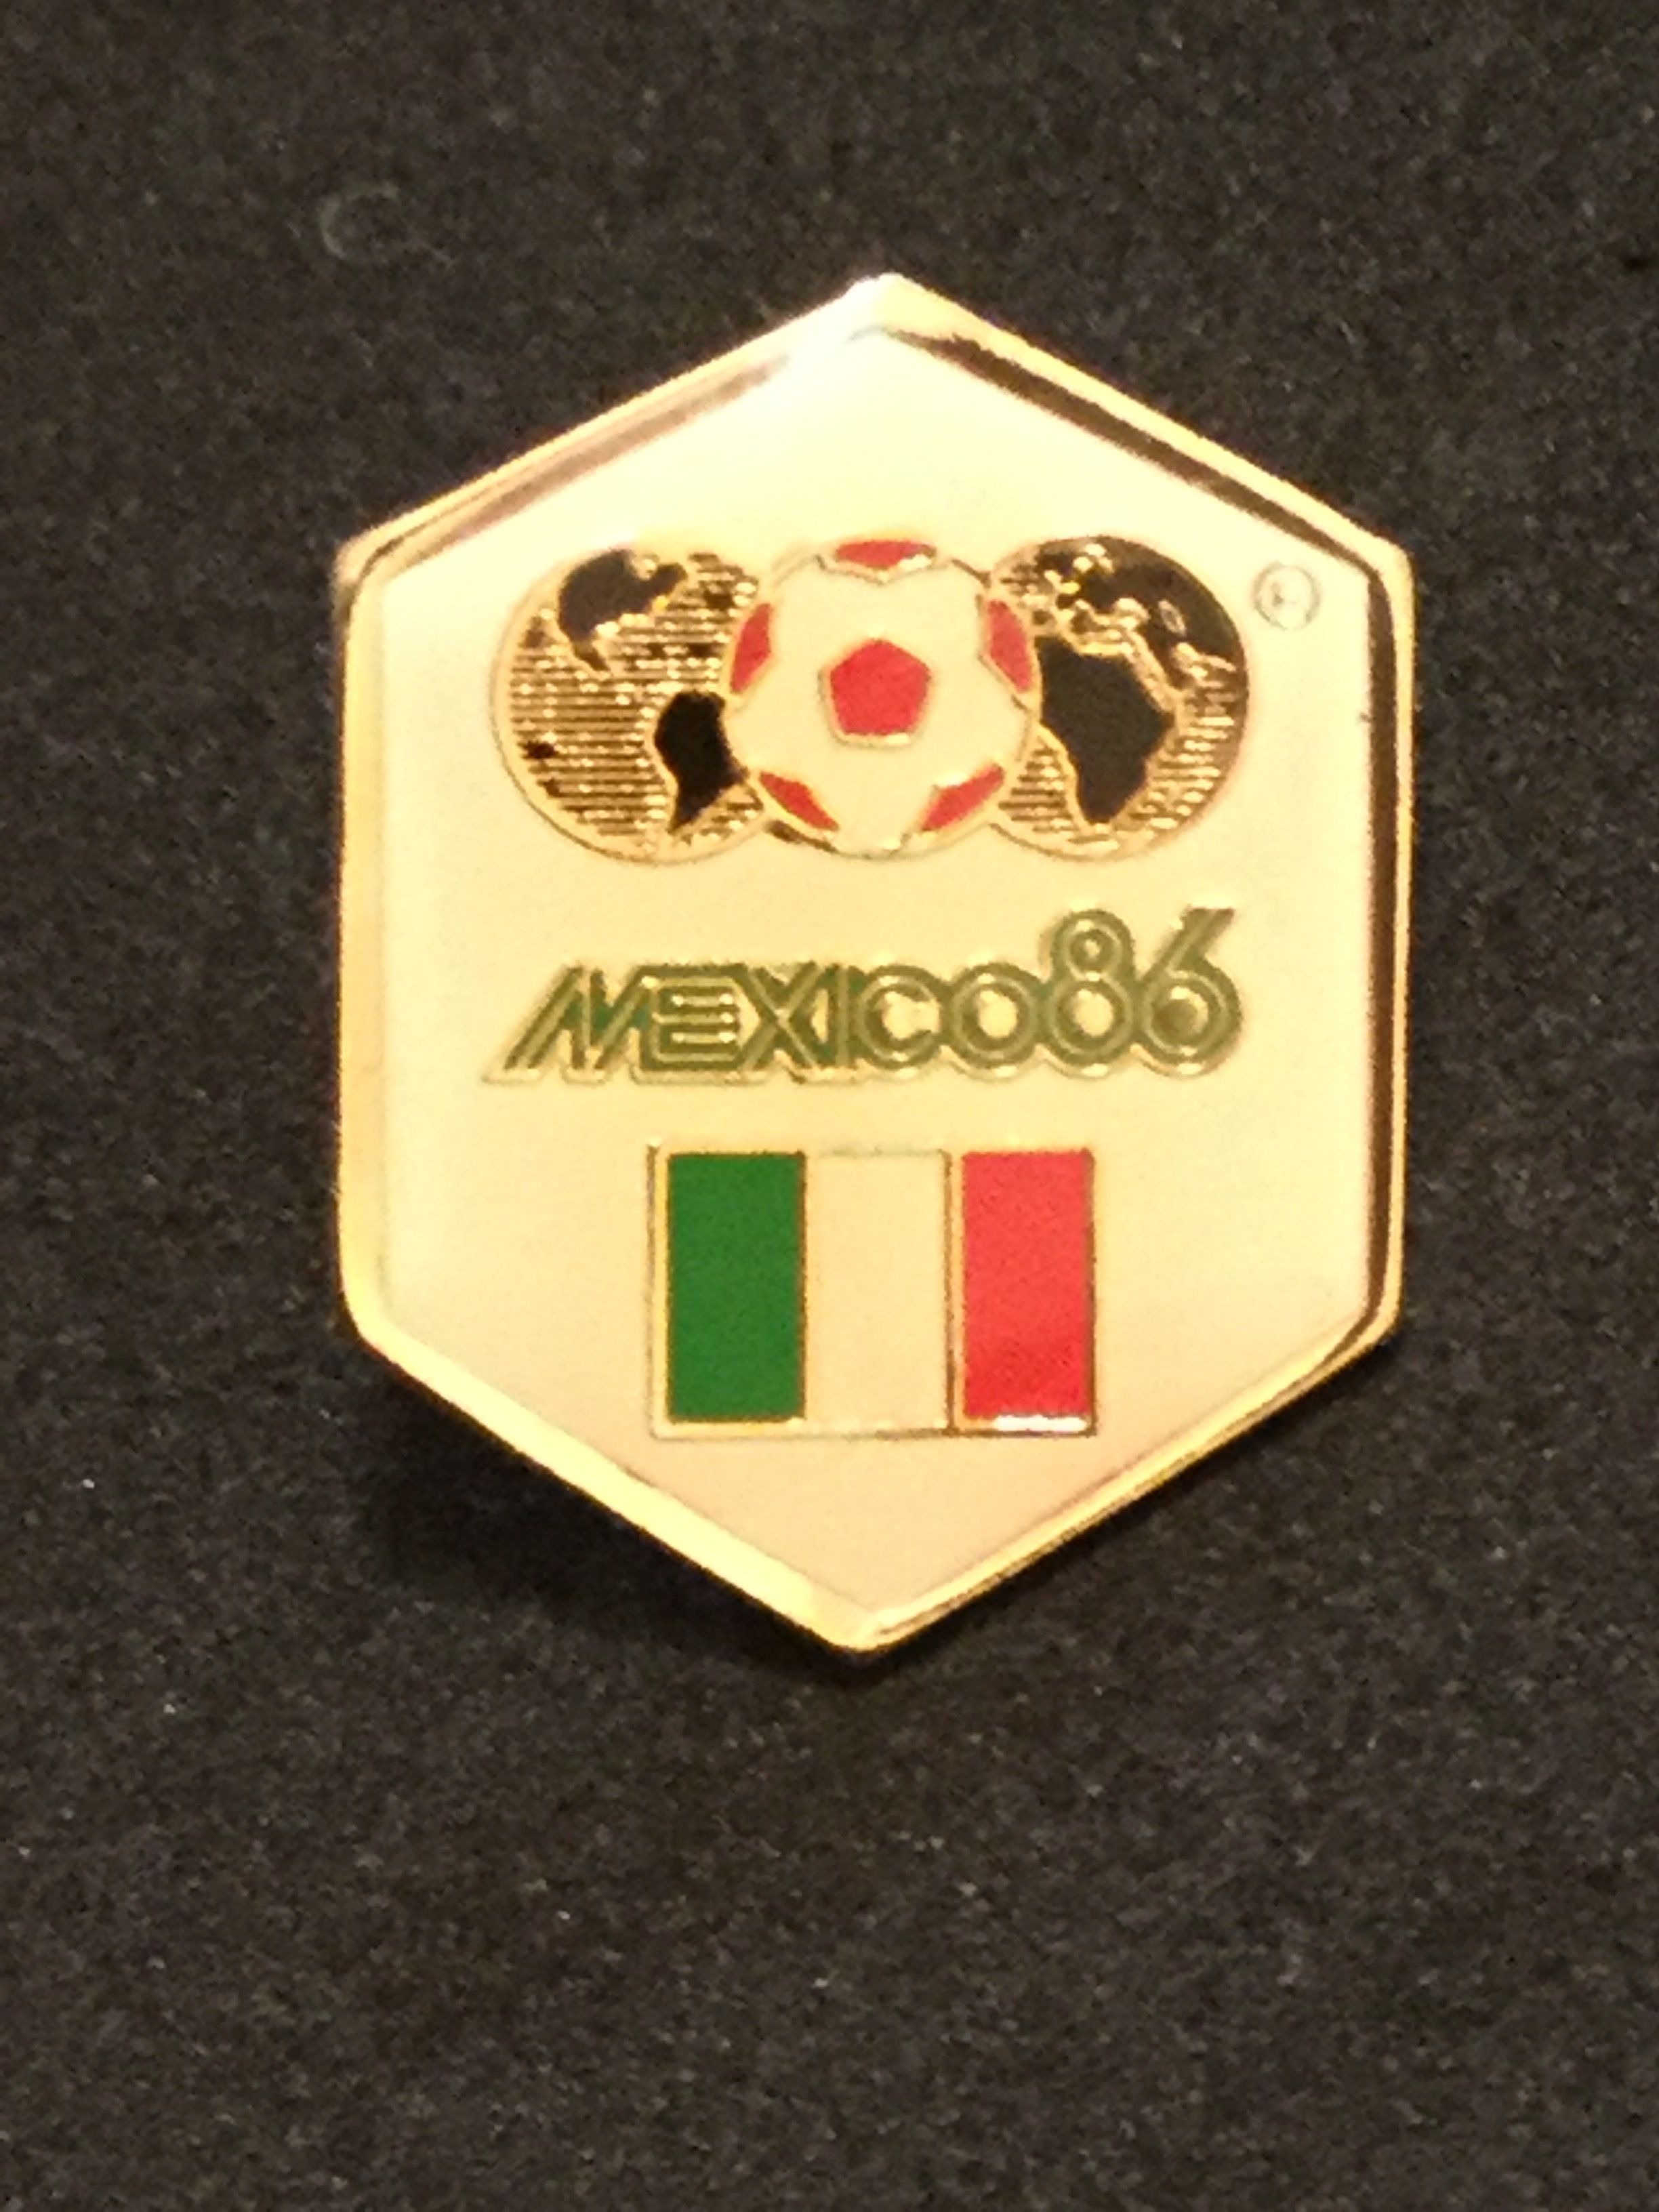 Pin By Mike Mastro On Fifa World Cup Football Soccer Collectors Pin Badges Fifa World Cup Pin Badges Collector Pins